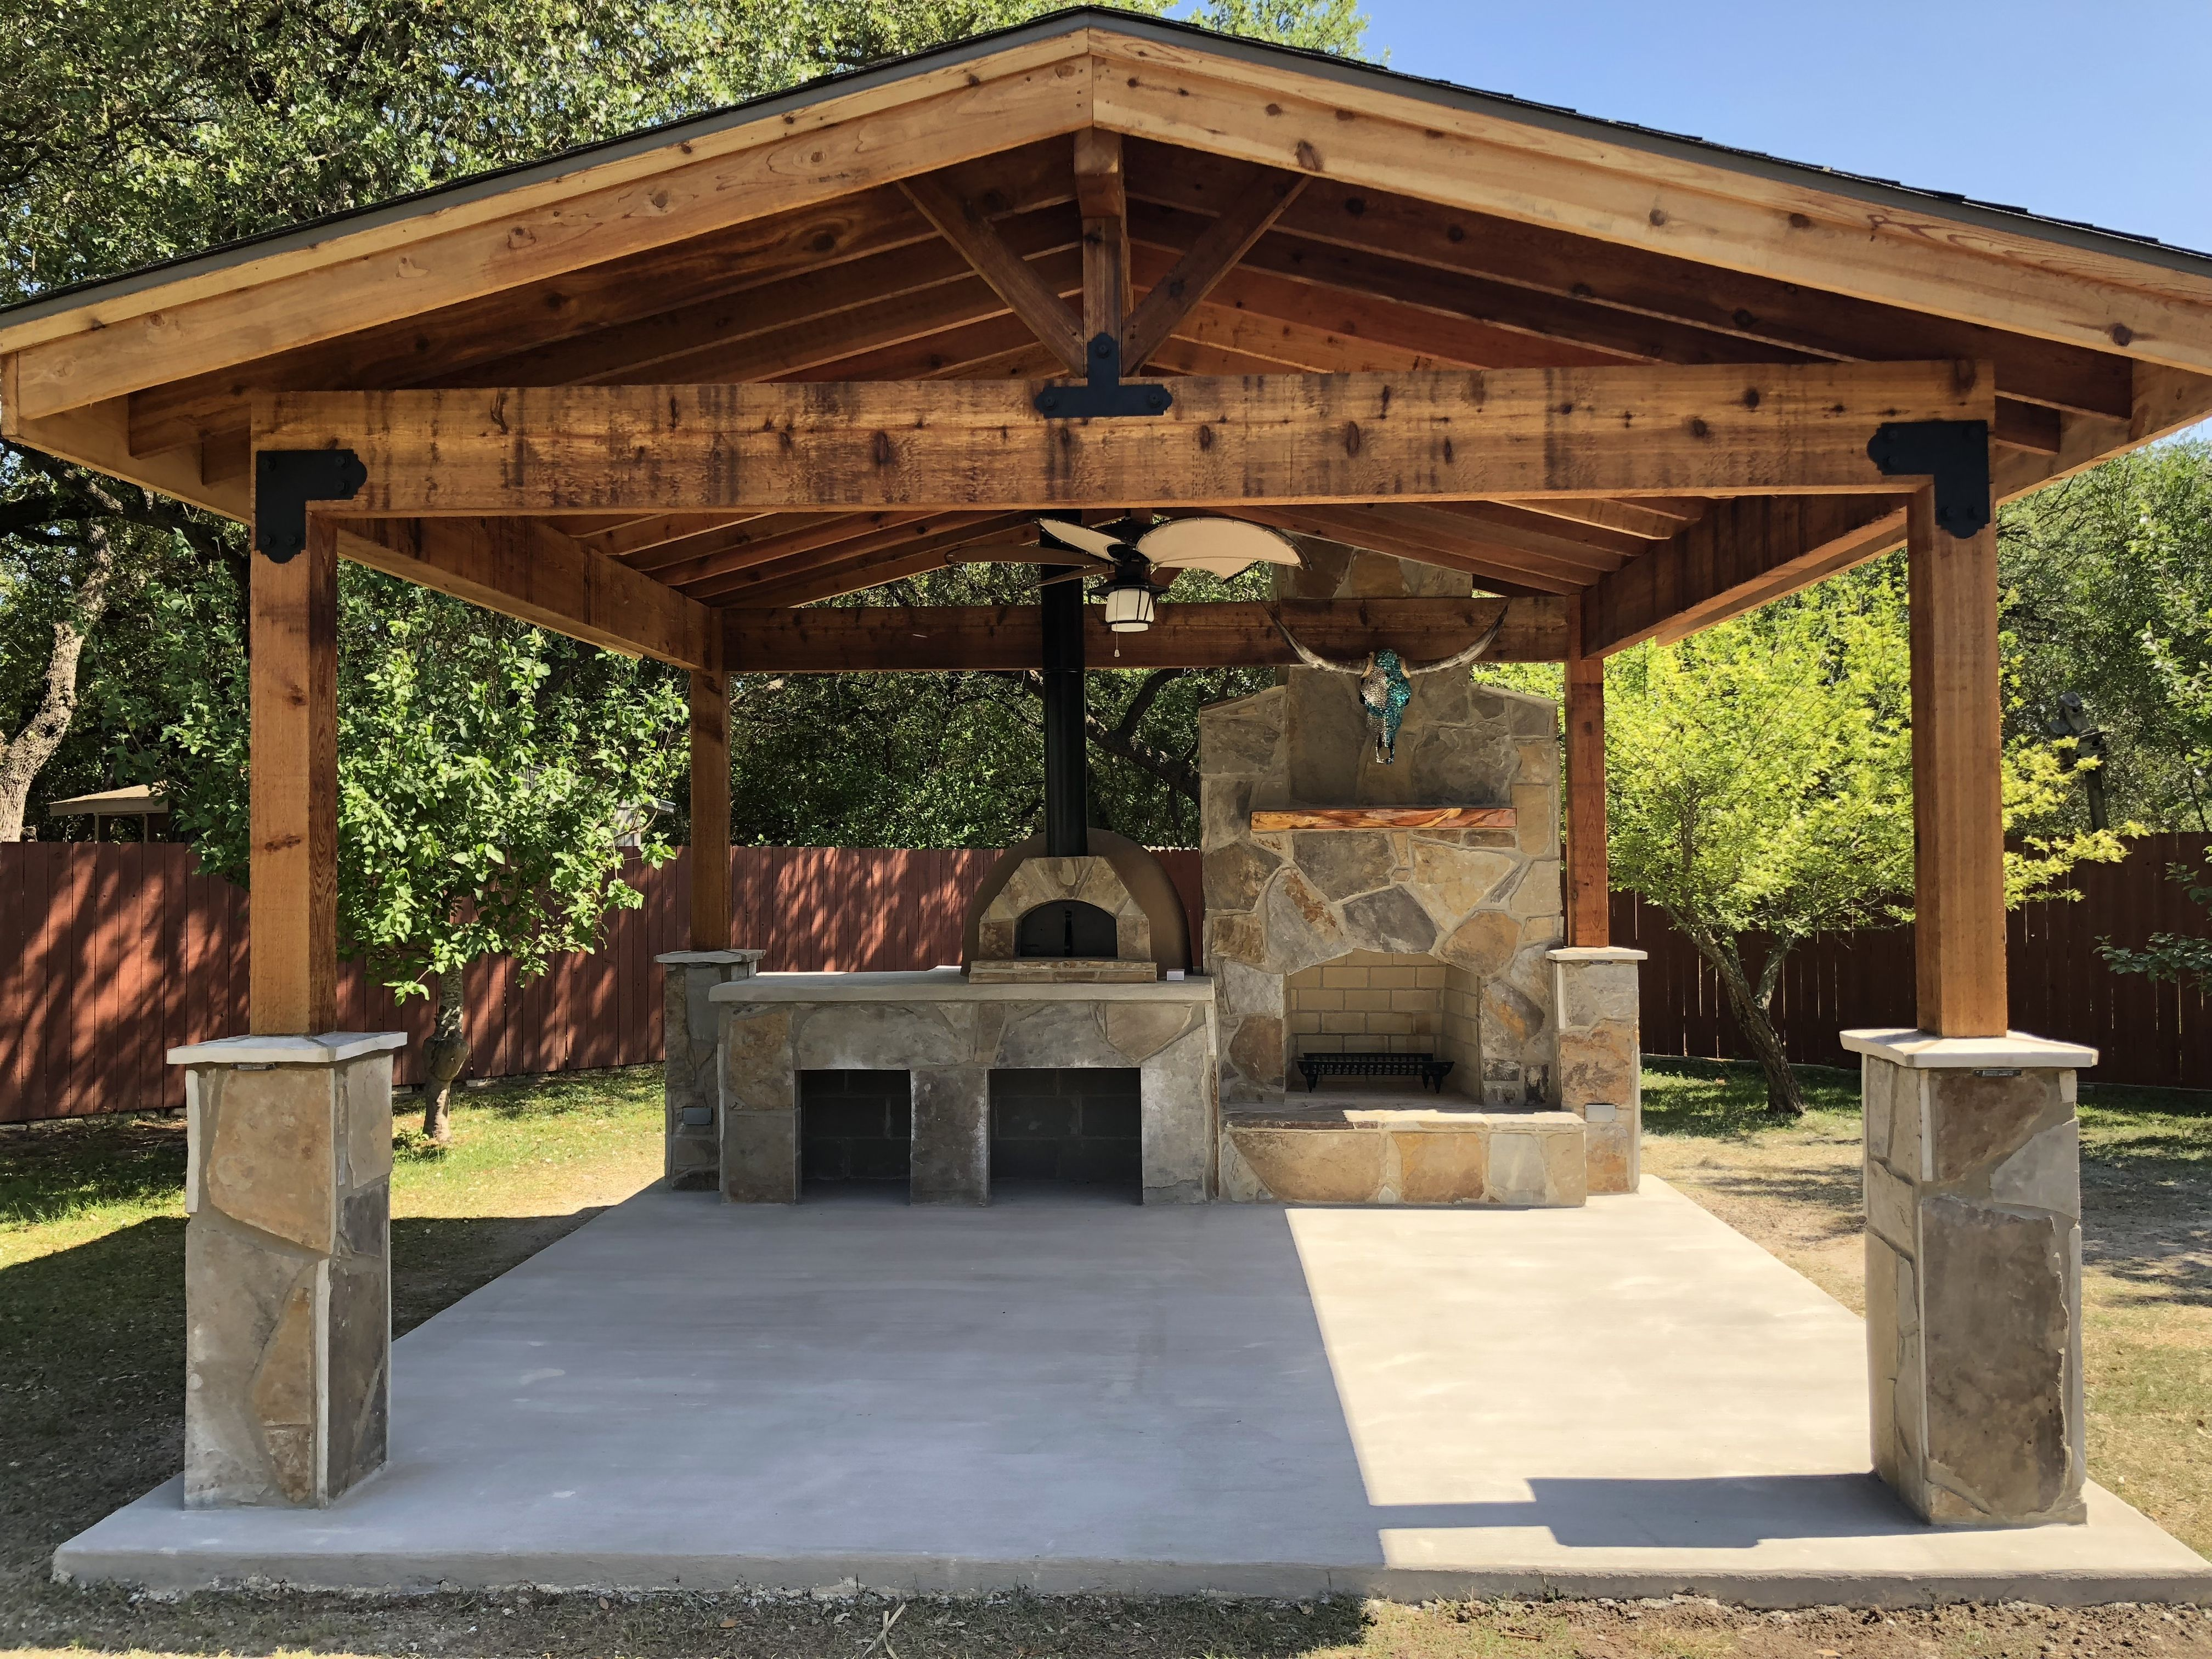 45 Awesome Outdoor Kitchen Ideas And Design Backyard Patio Designs Backyard Pavilion Patio Design